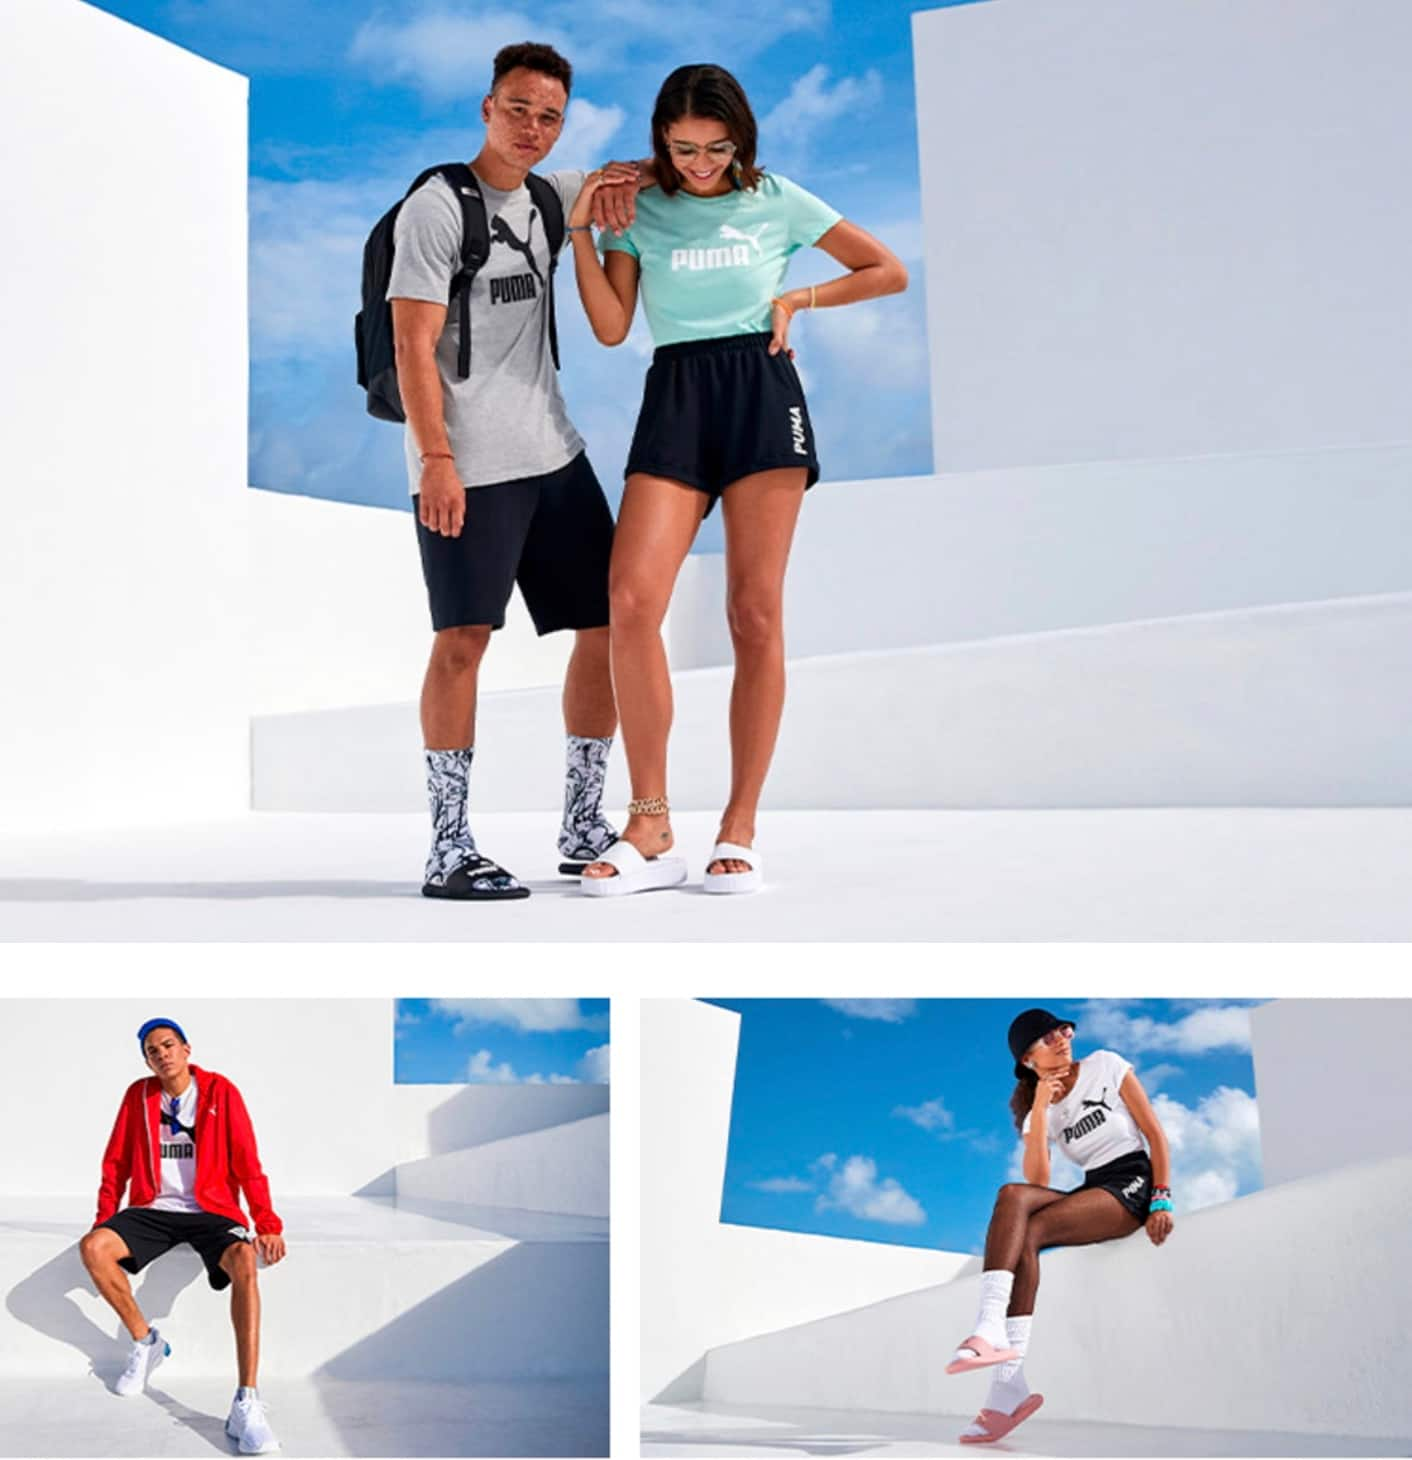 Puma Flash Sale - Get 30% Off Your Entire Order Use Code: WEEKEND30. May 22-25 Only